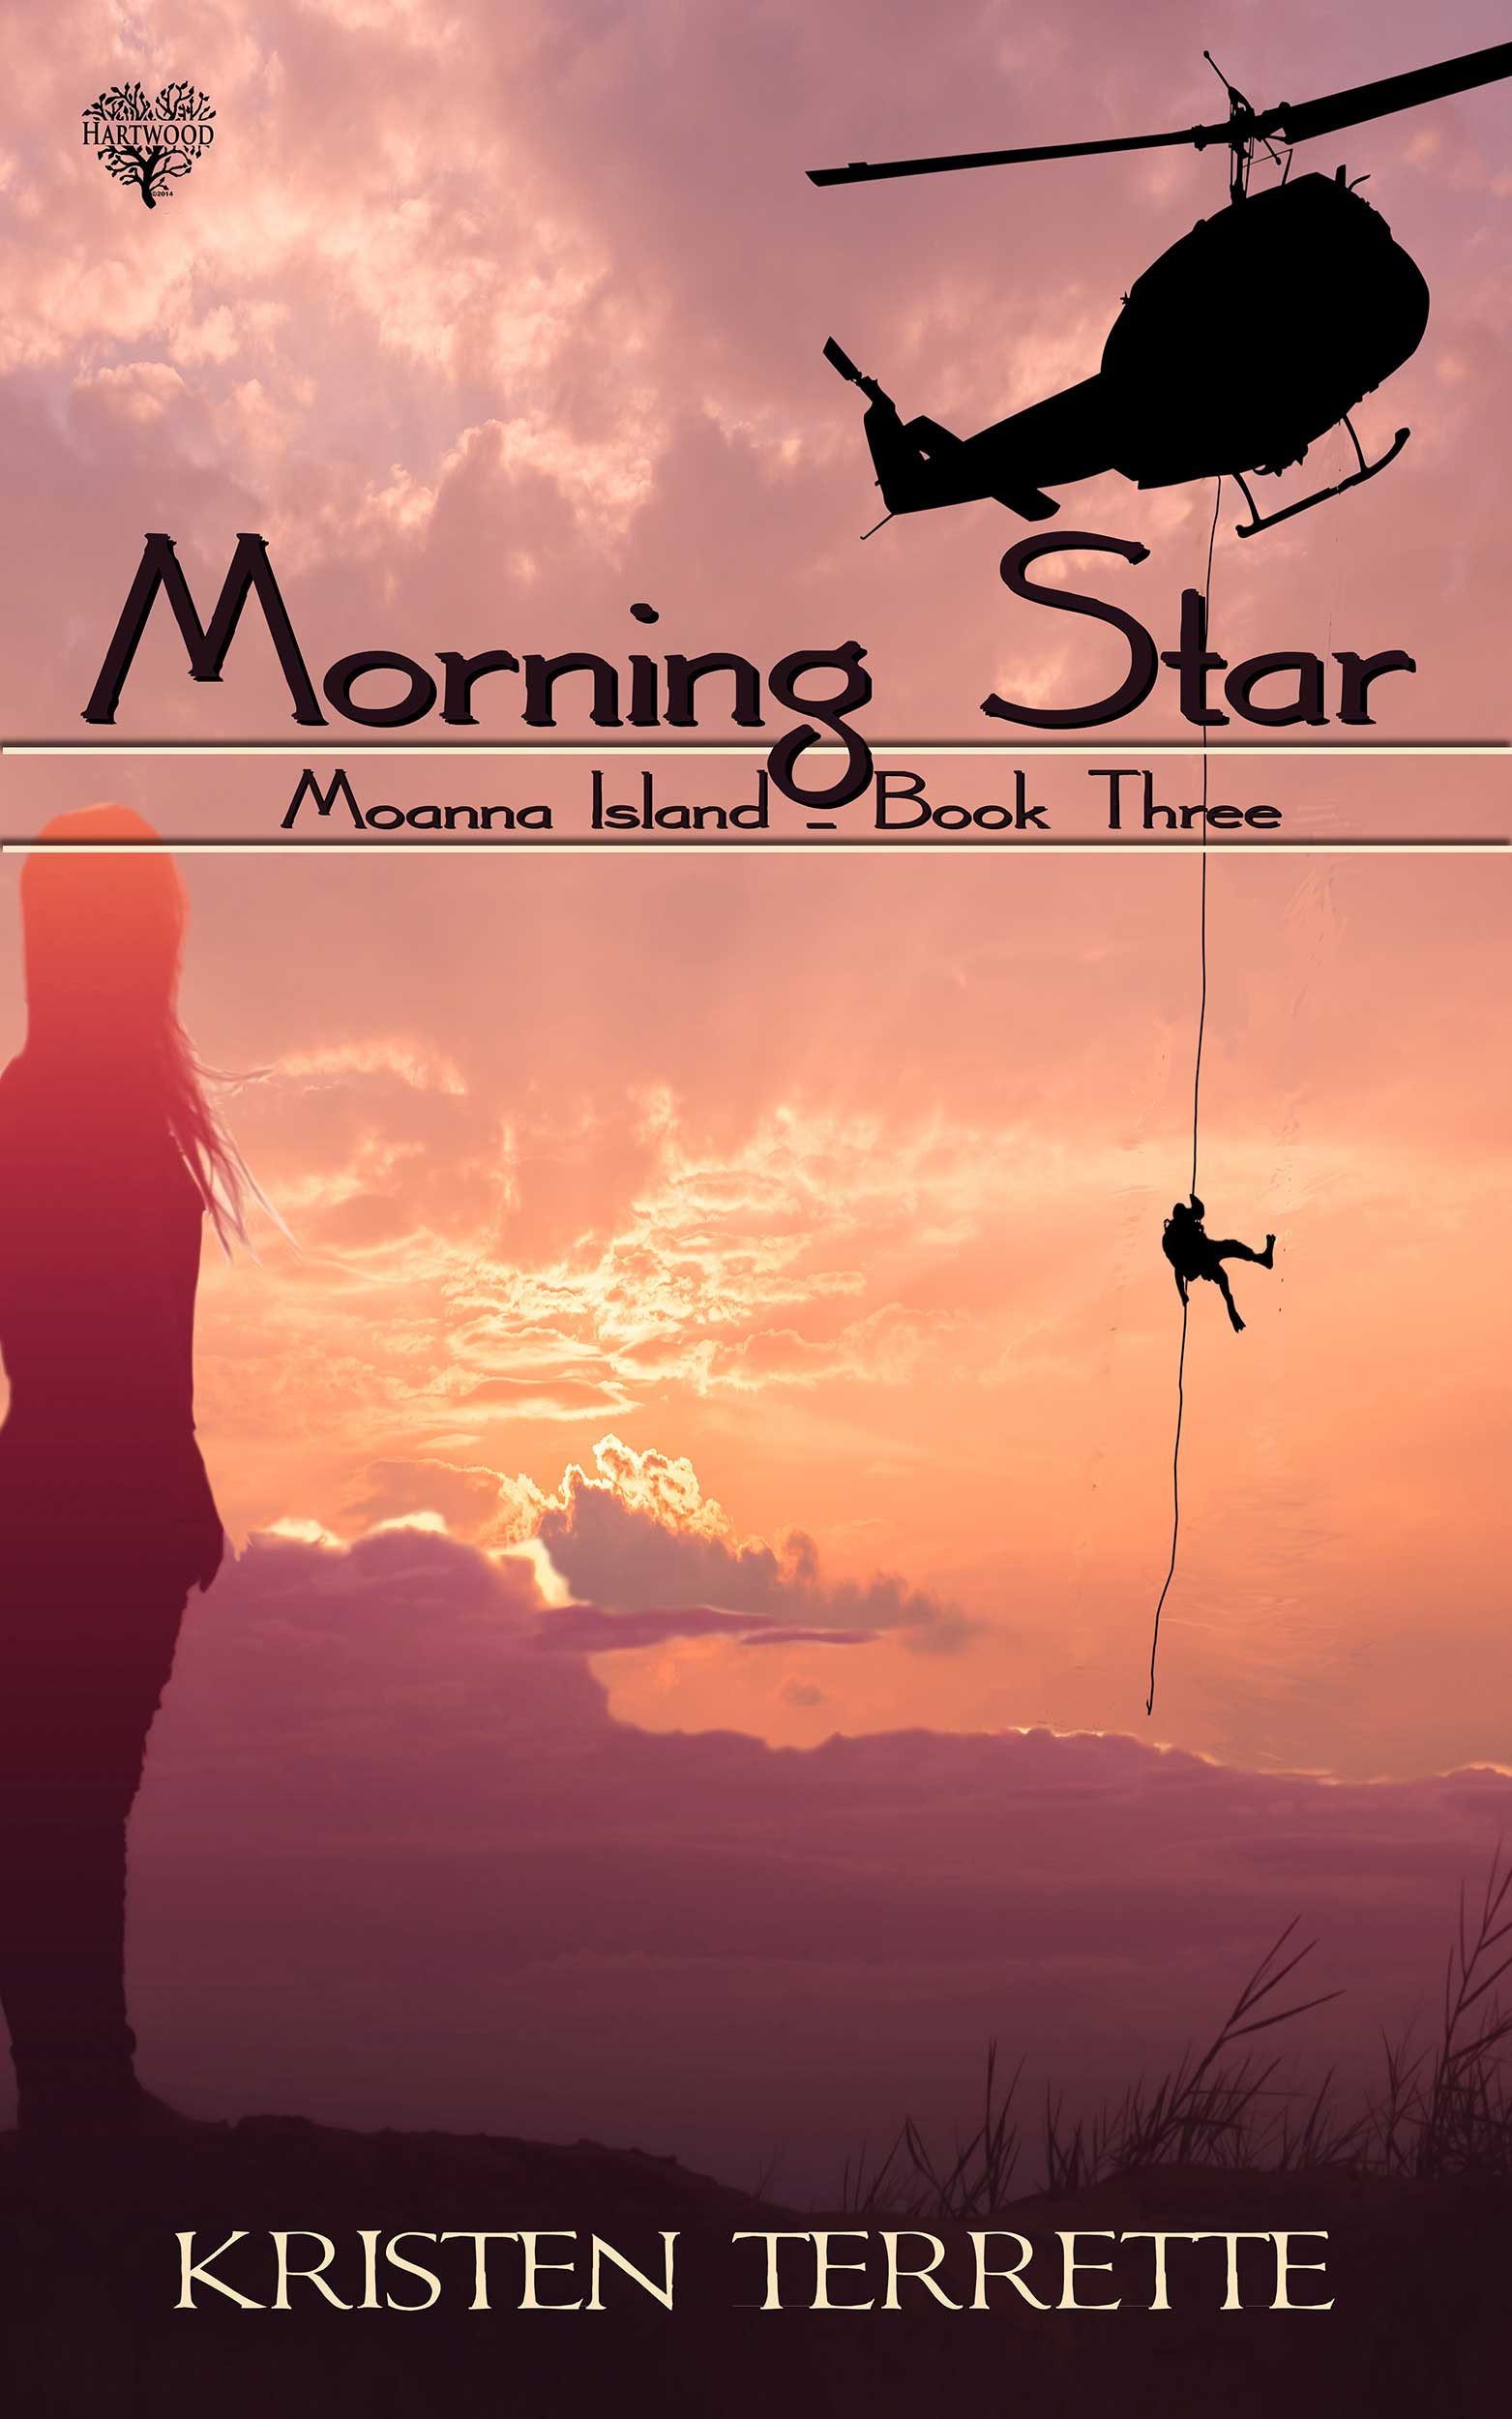 Morning_Star-Kristen_Terrette